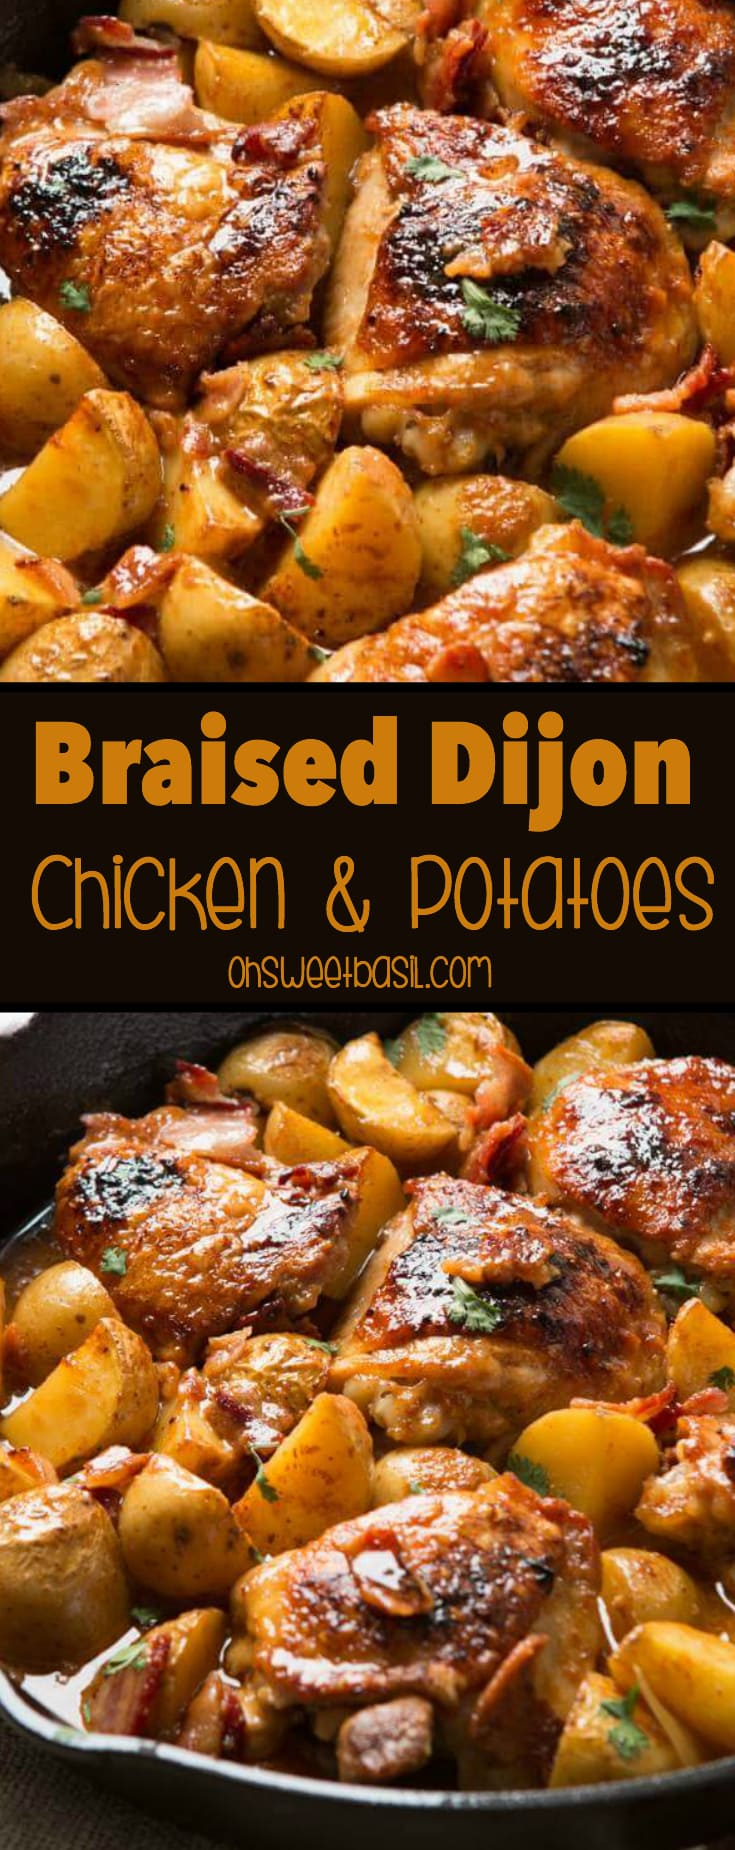 Hands down, our absolute most favorite recipe ever is this juicy, saucy braised dijon chicken and potatoes that's a one skillet wonder!